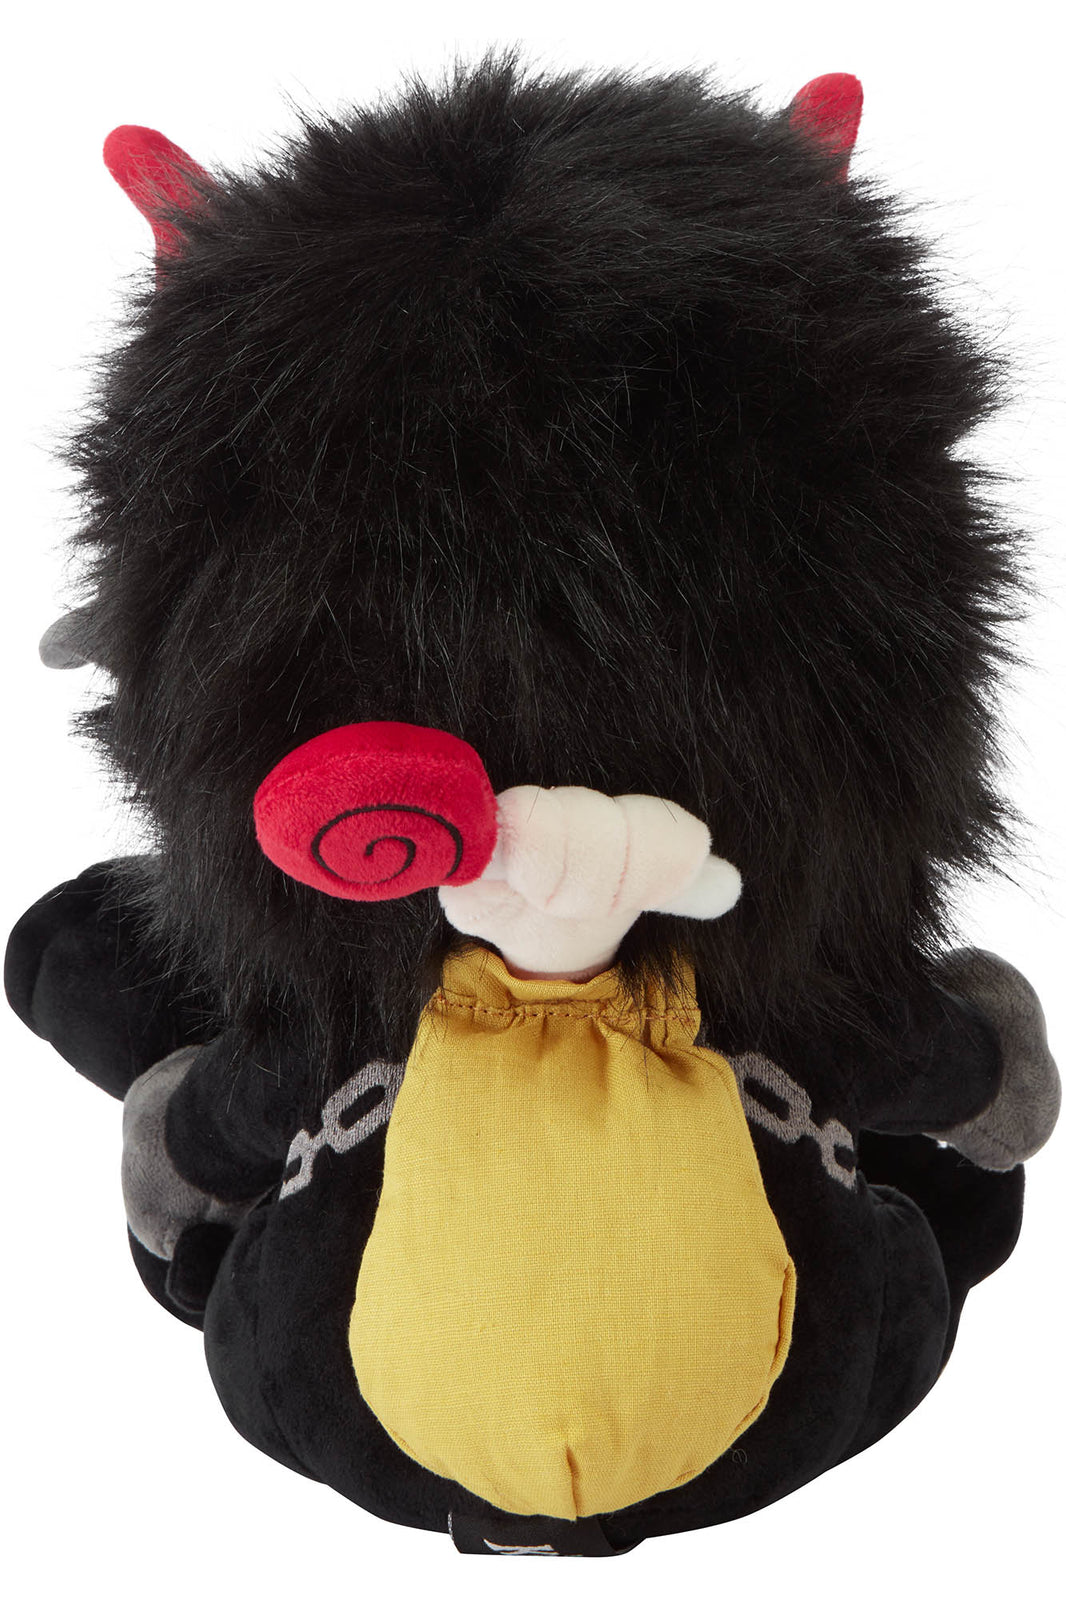 Hexmas Spirit Plush Toy